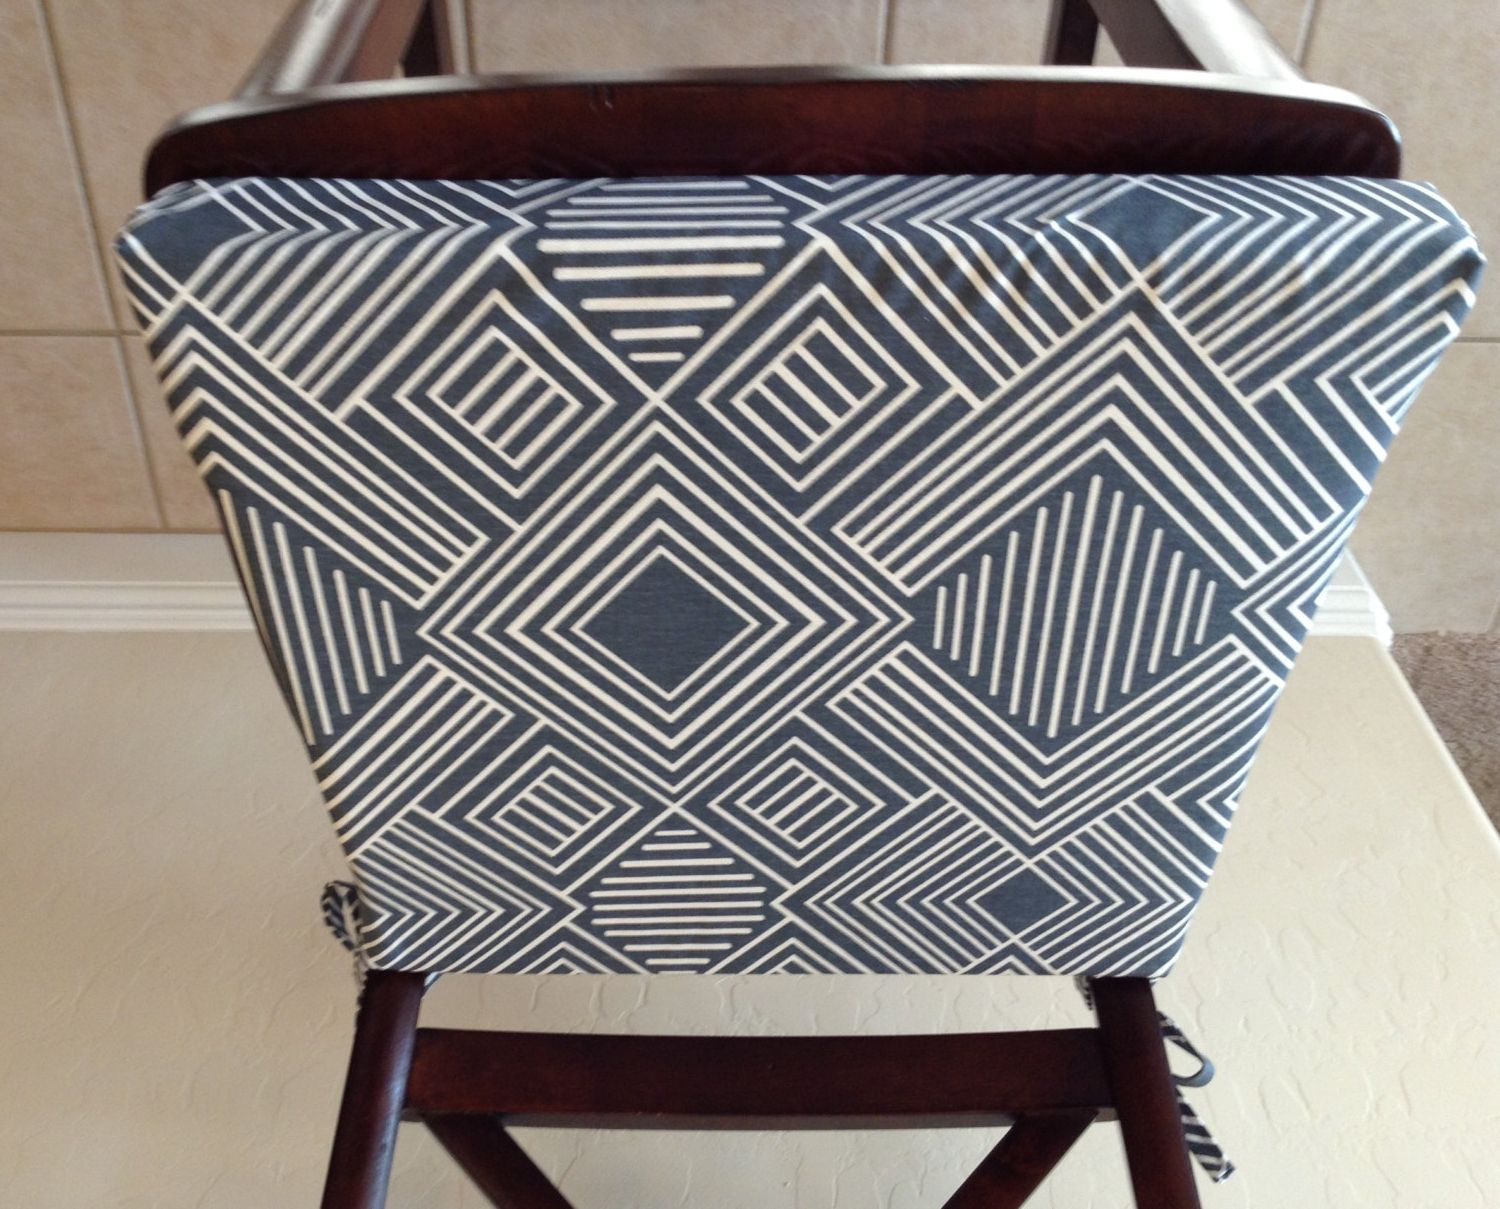 kitchen chair pads Geometric print seat cushion cover kitchen chair pad gunmetal blue gray on cream cotton fabric counter bar stool seat pad cover washable